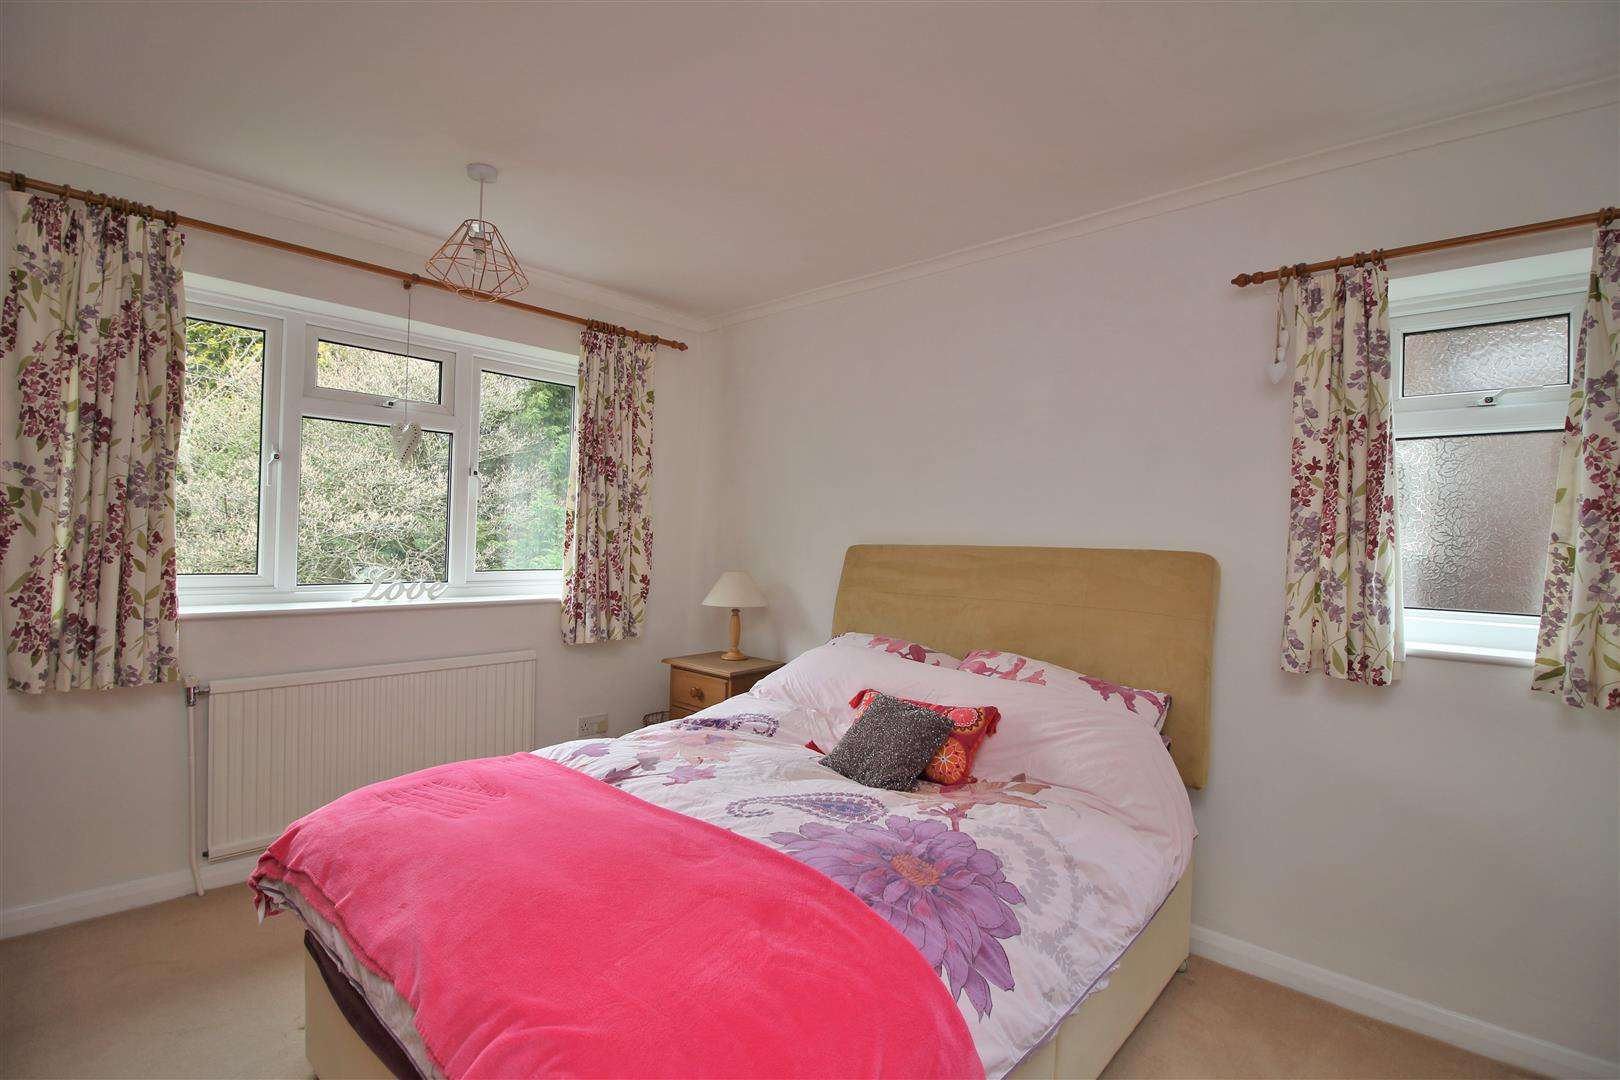 5 bed for sale - (Property Image 10)